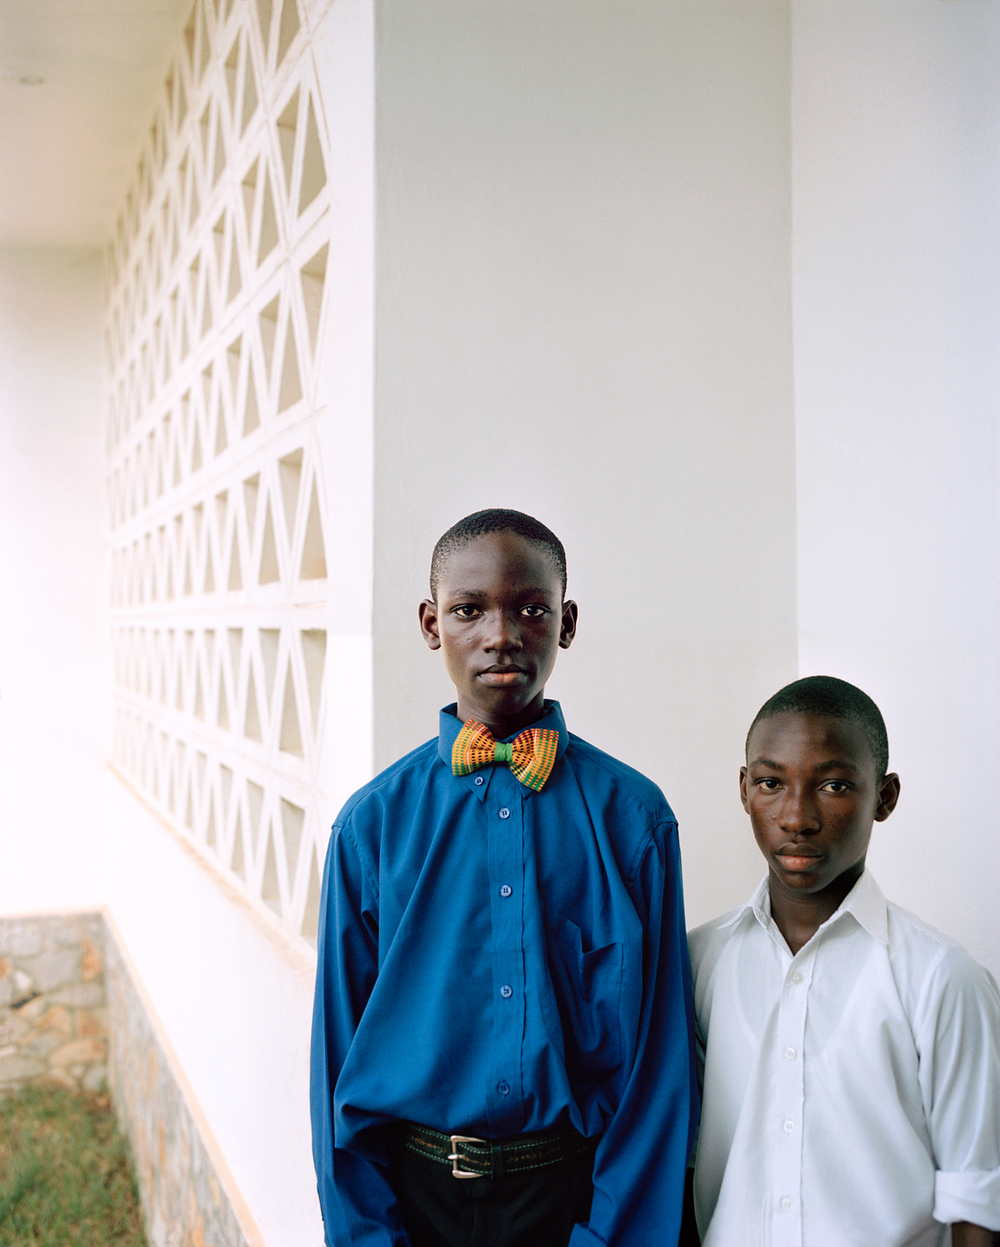 Wedding Boys, Ghana  The  HP Library  are photographs taken for a Hewlett Packard photo library in Canada (Ontario), the United States (California), Morocco and Ghana. 1999-2001